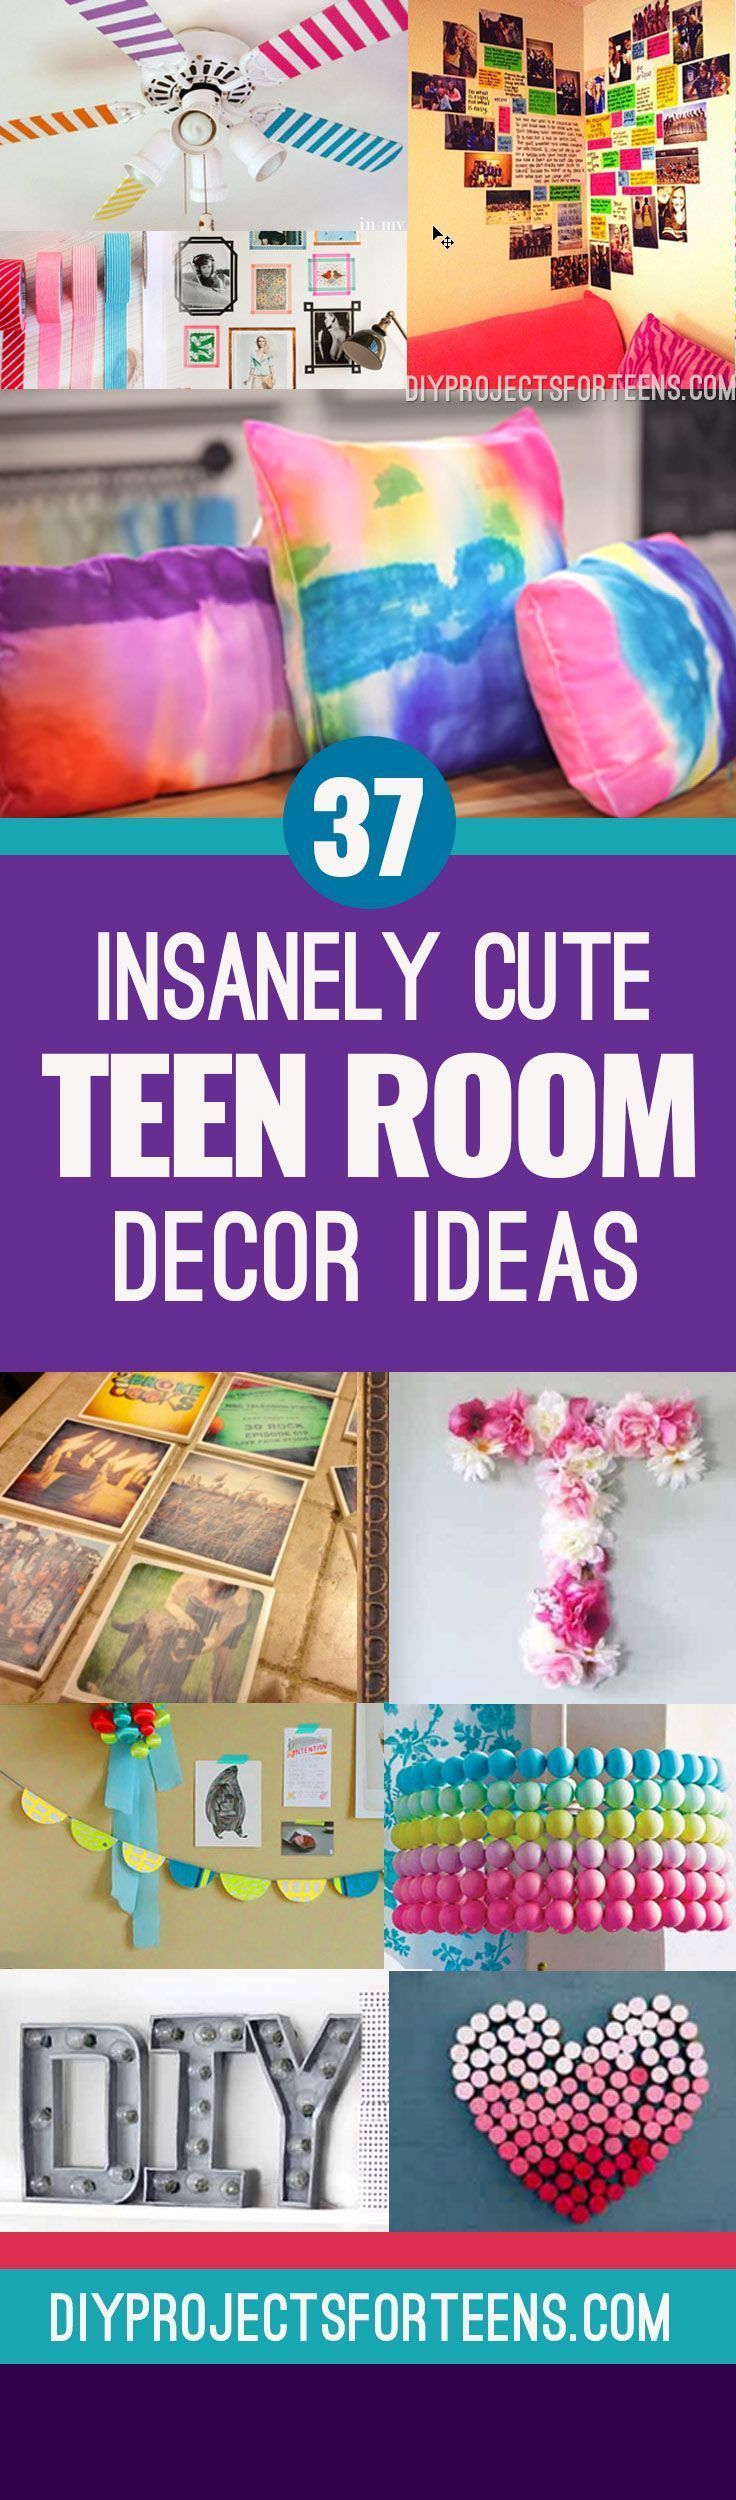 37 insanely cute teen bedroom ideas for diy decor - Cute Teen Room Decor